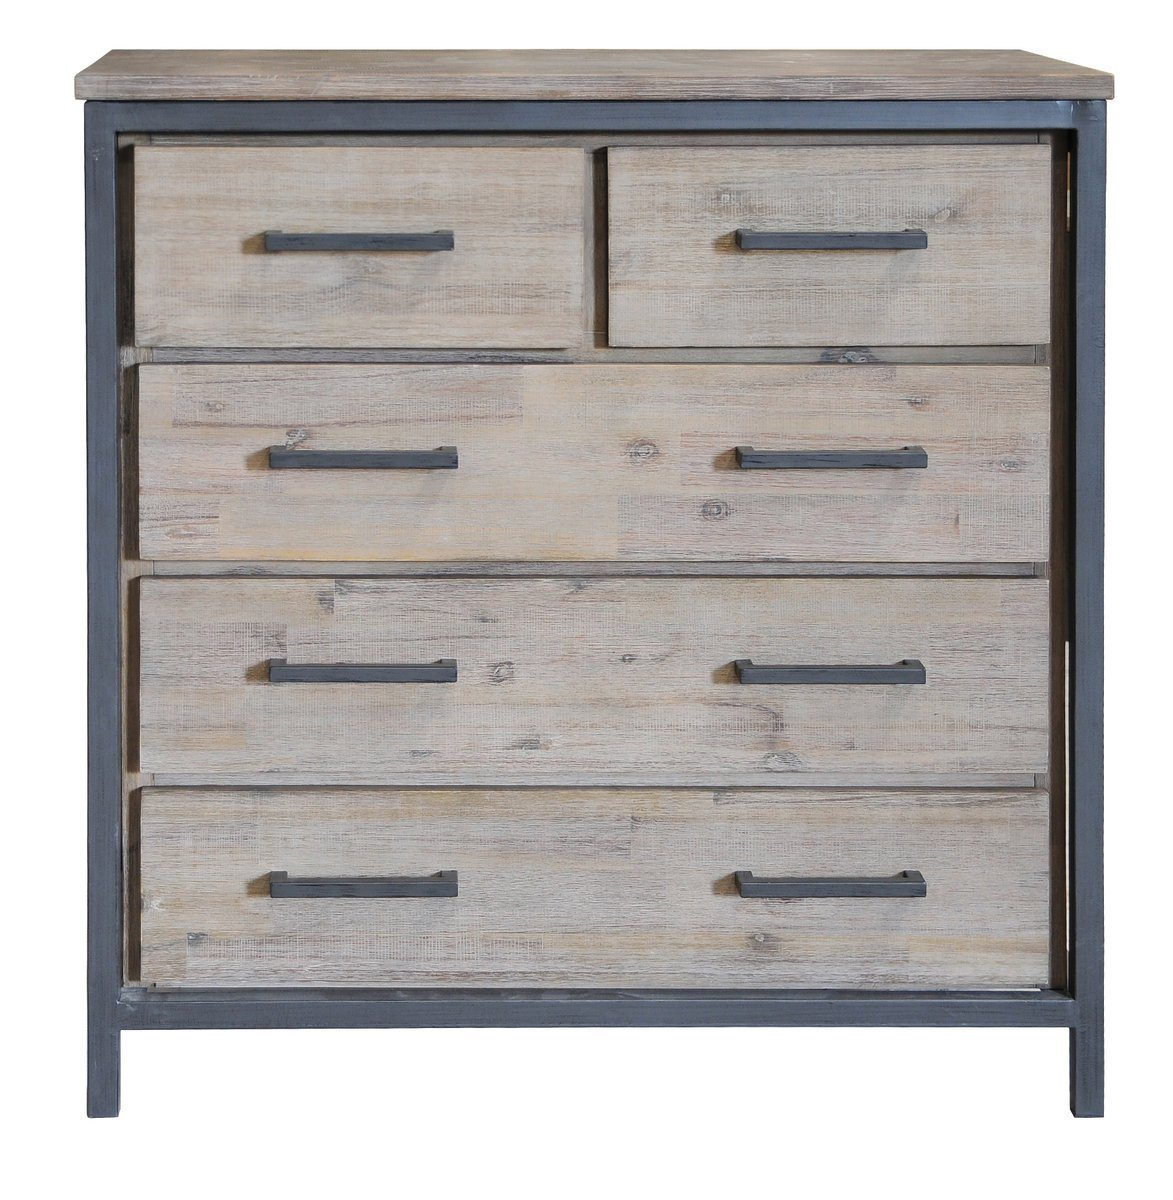 Irondale 5 Drawer Dresser Dressers Showhome Funiture